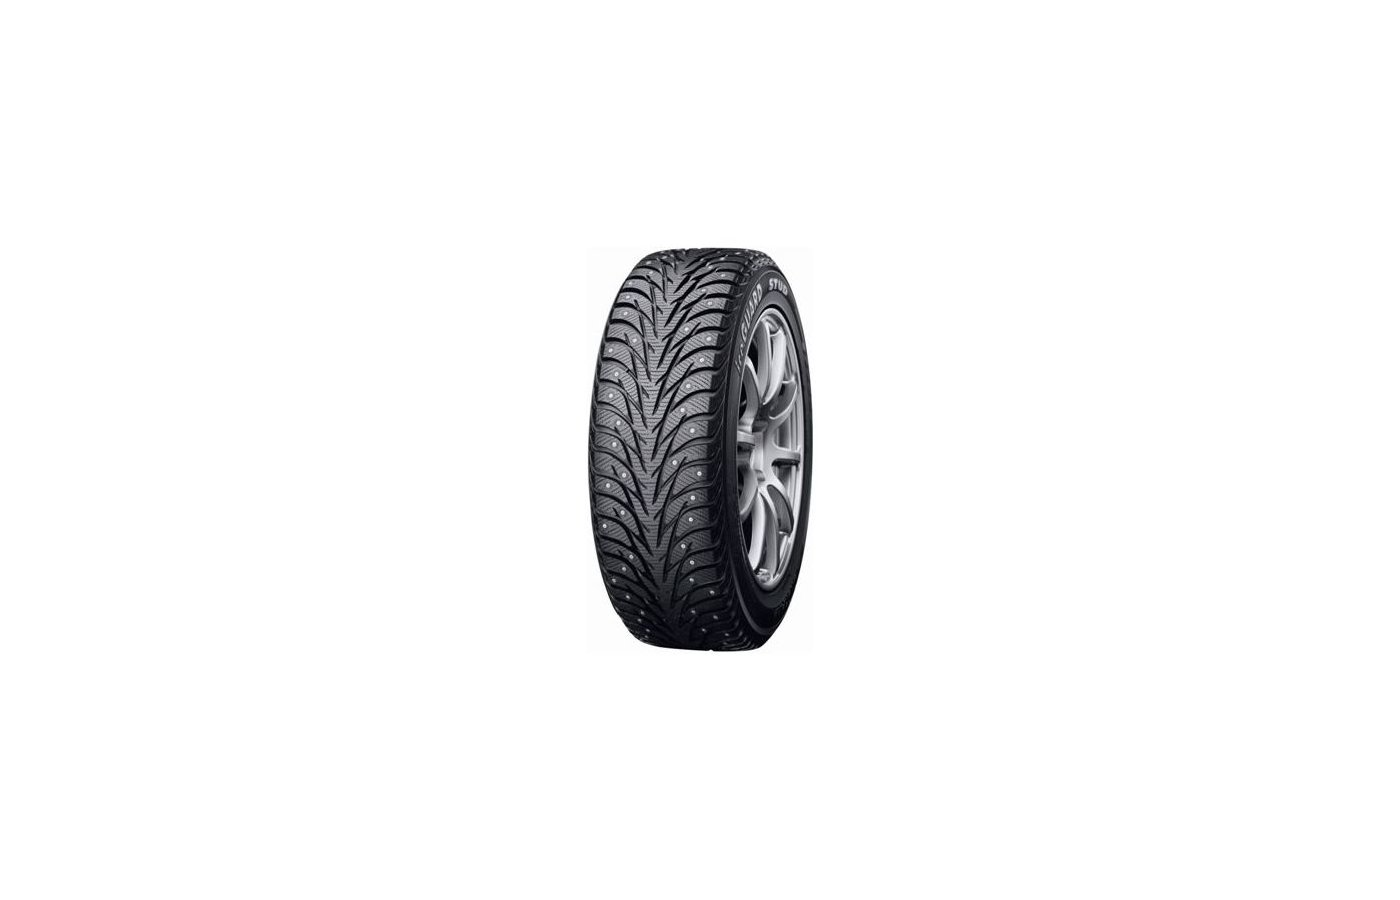 Шина Yokohama Ice Guard IG35 Plus 245/45 R17 TL 99T шип